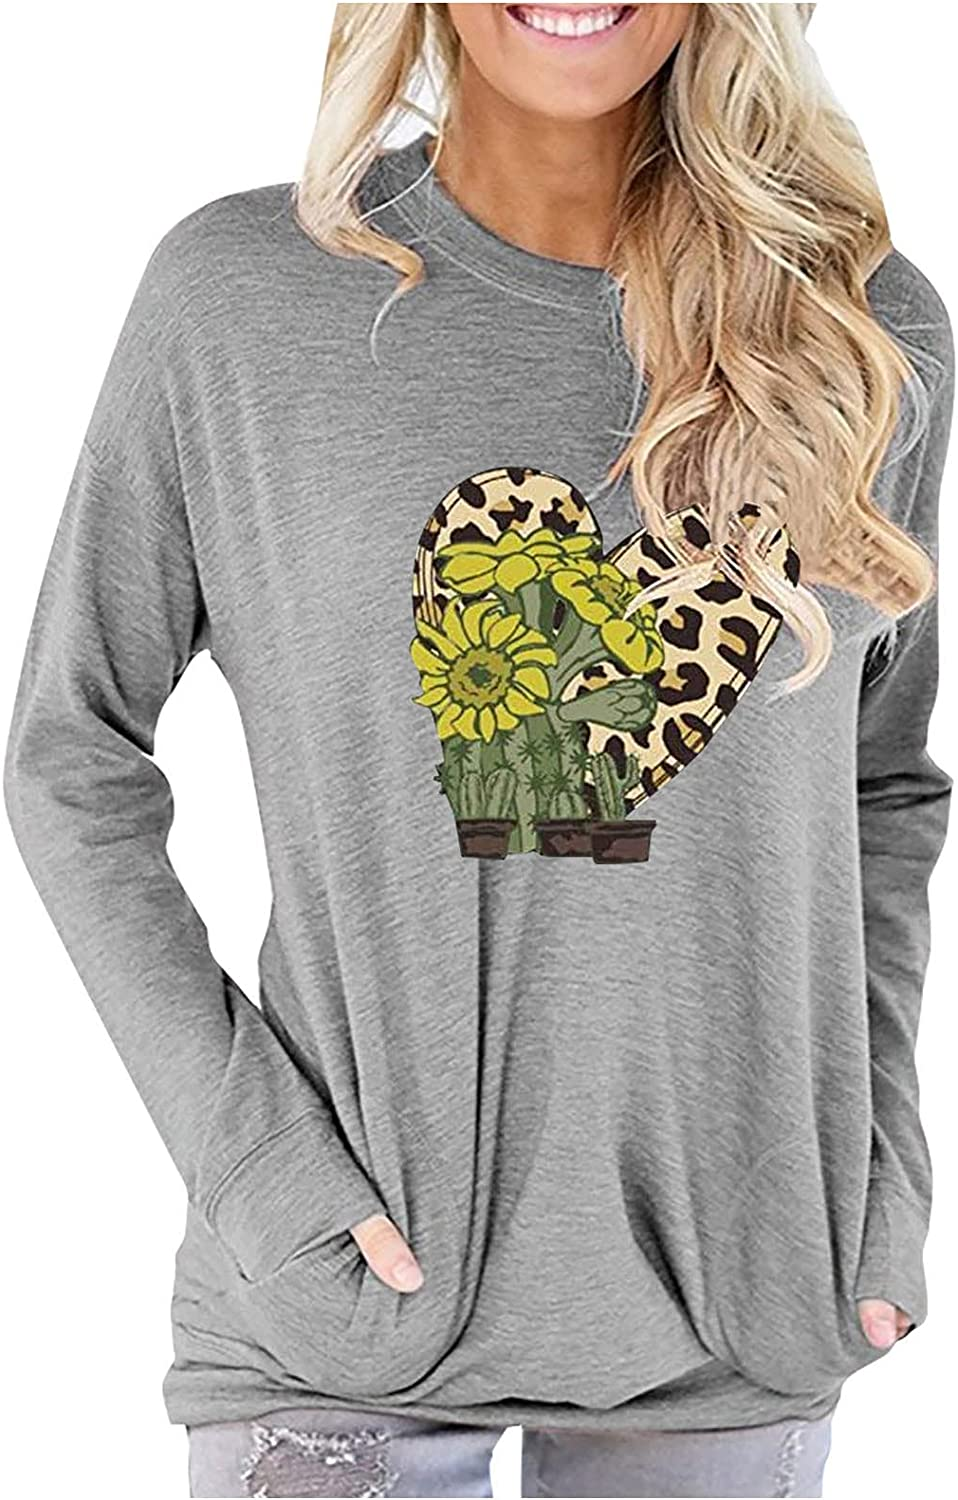 Long Sleeve Tops for Women Solid Color Rooster Print O-Neck Shirts Casual Loose Blouse Tunic with Pockets Tops